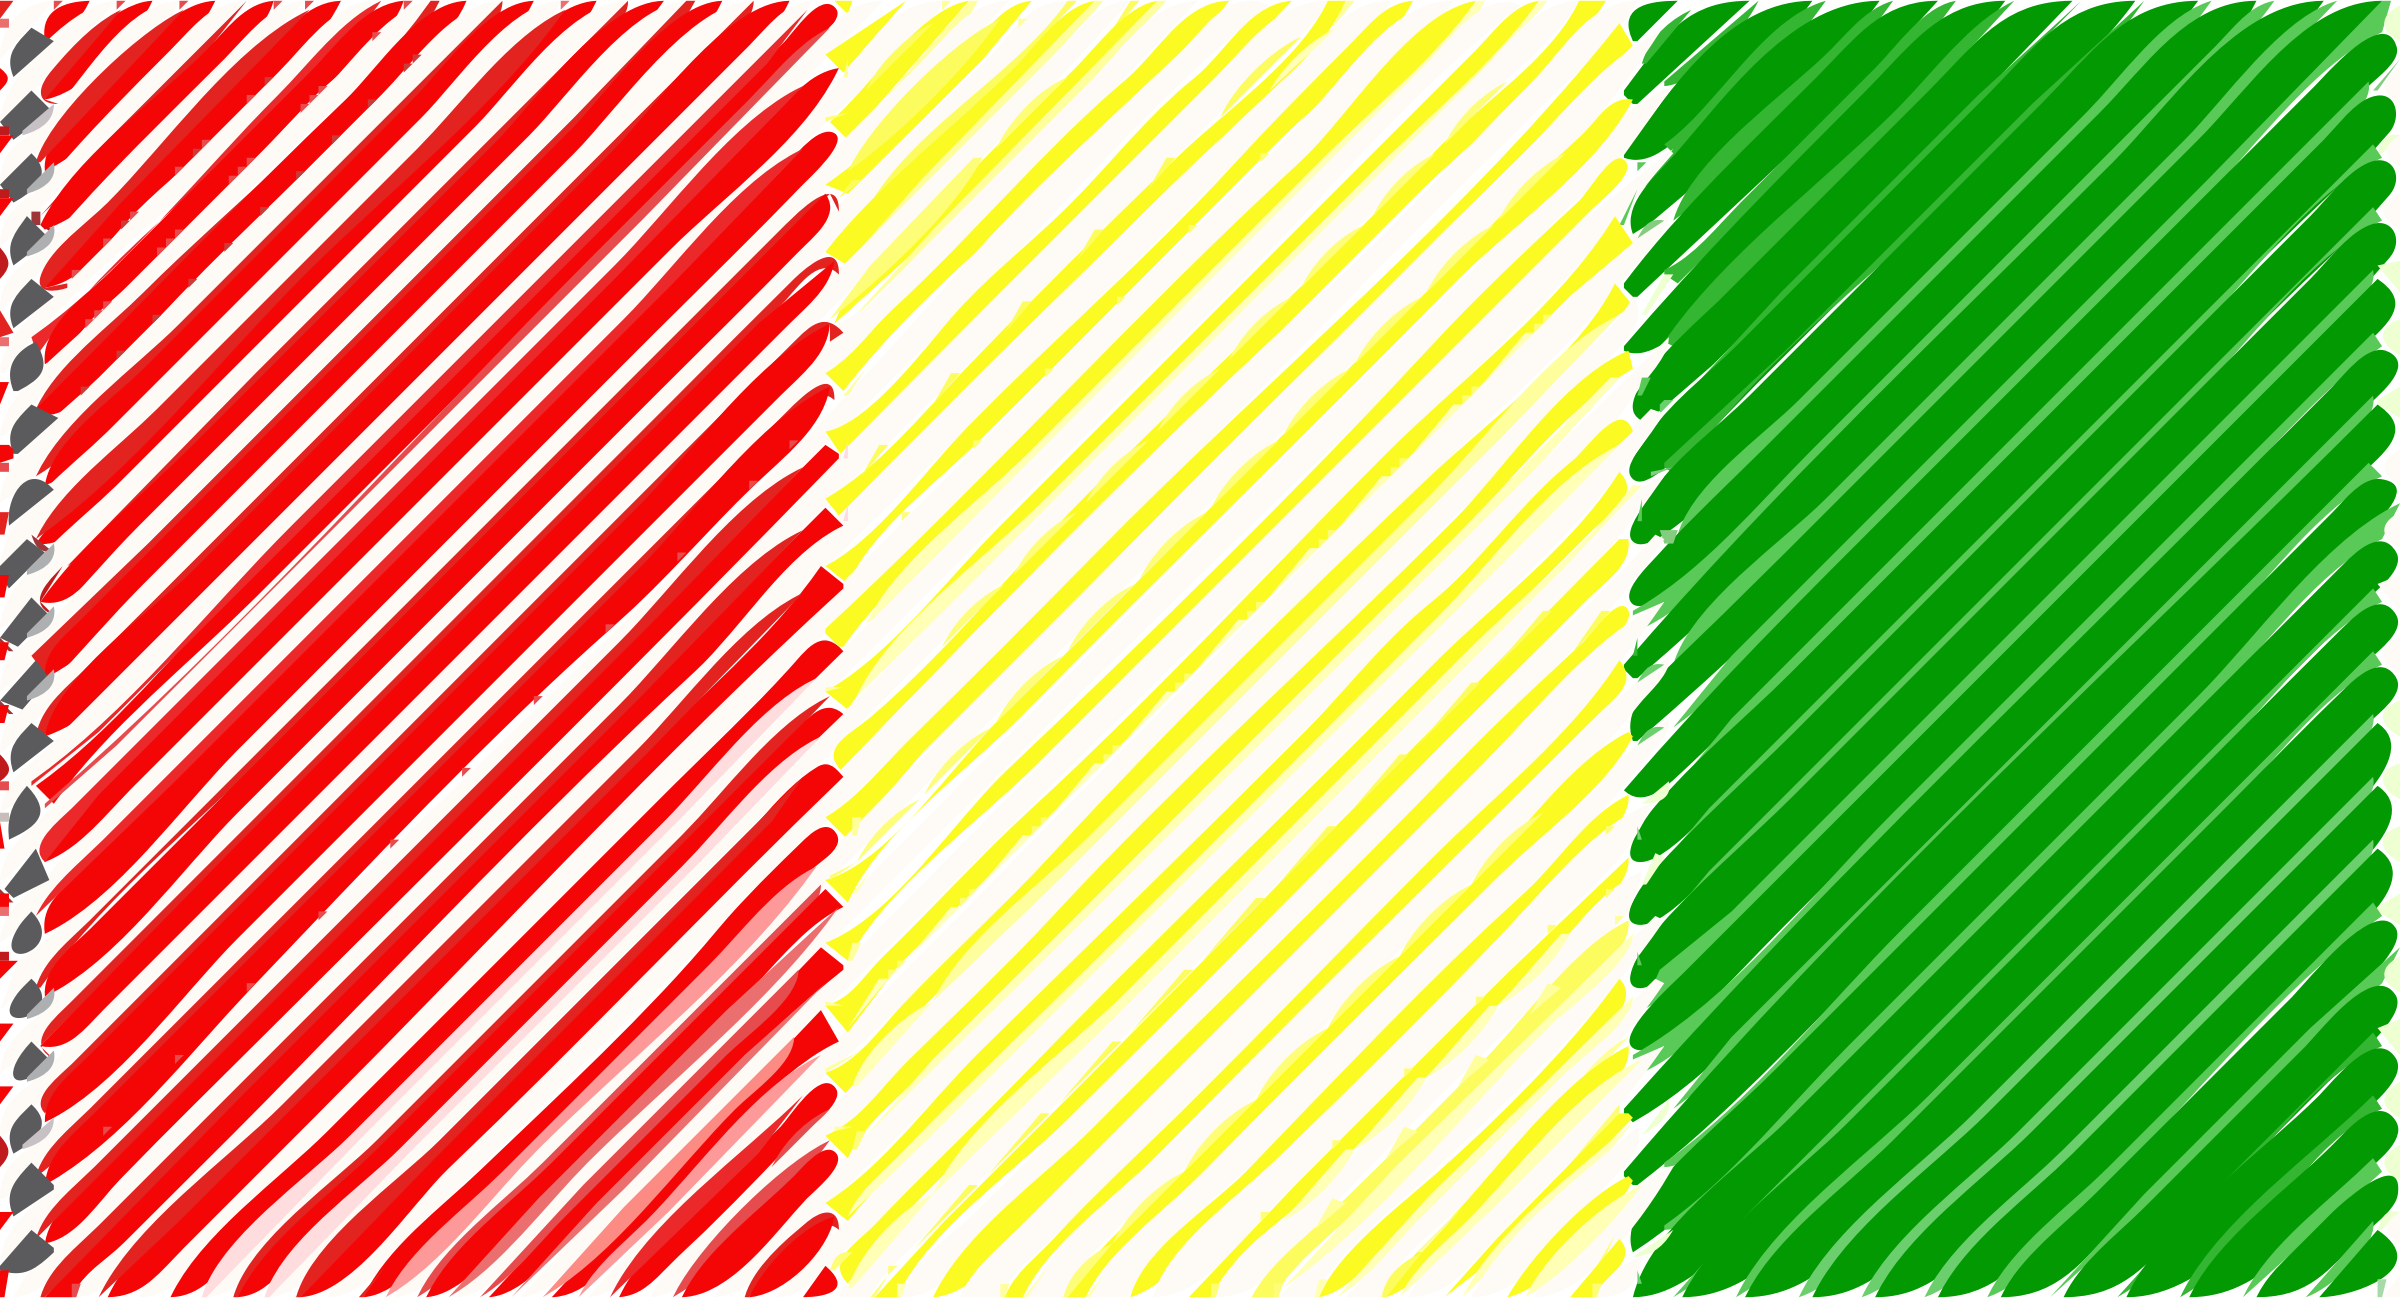 Guinea flag linear by Joesph